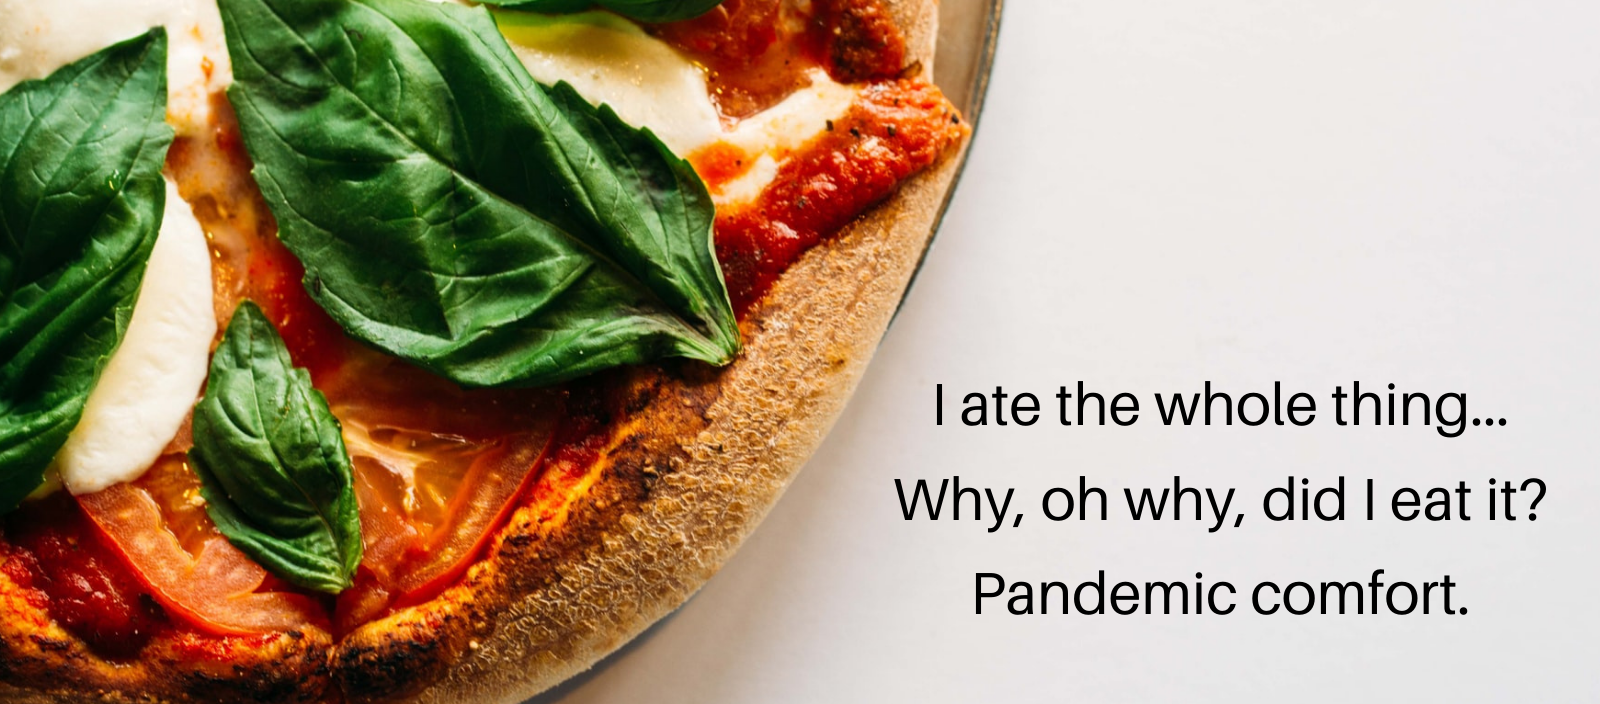 Margherita pizza with the haiku 'I ate the whole thing...Why, oh why, did I eat it? Pandemic comfort.'